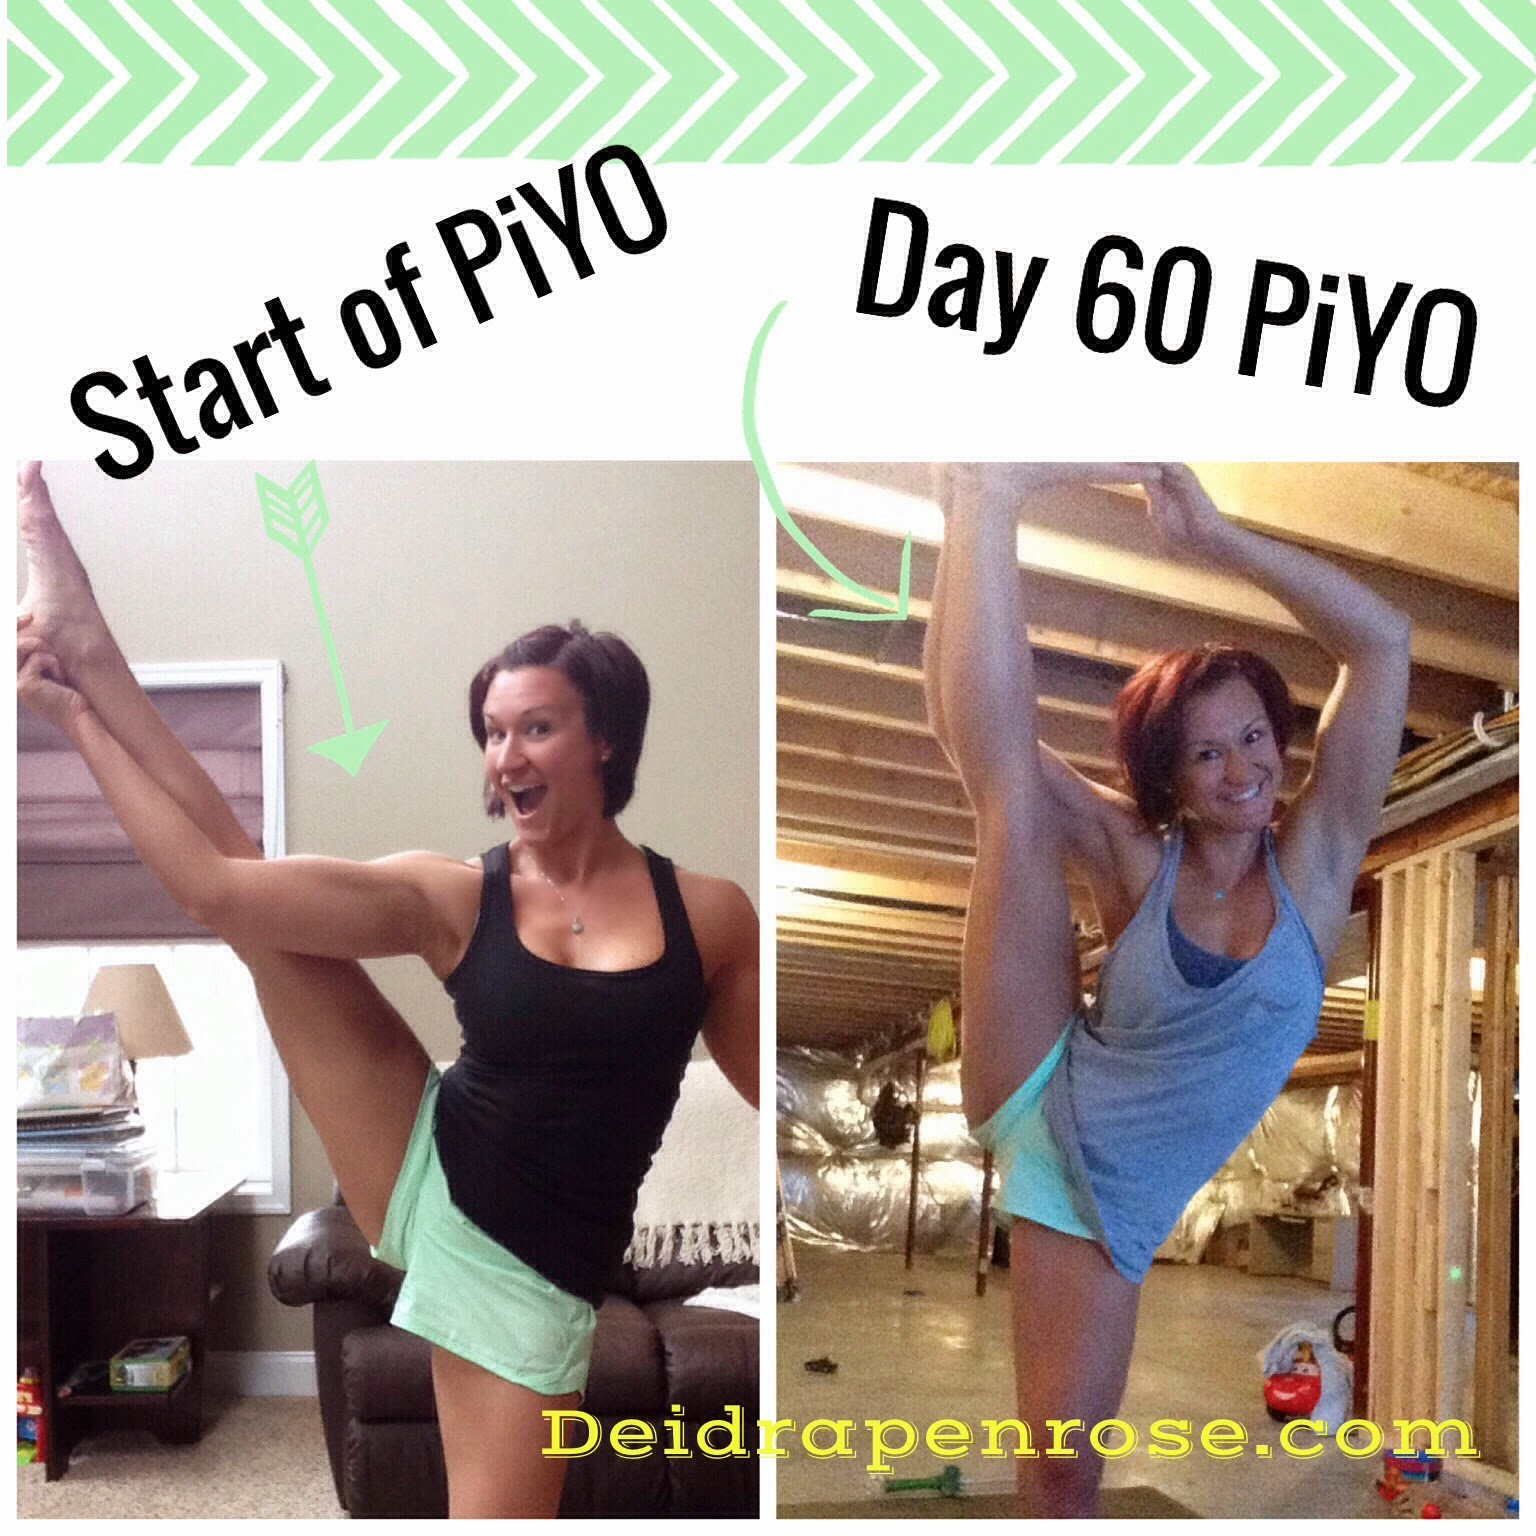 Piyio, piyo test group, piyo chalene johnson, piyo transformation, piyo results, team beach body, team beach body fitness challenge, clean eating, piyo meal plan, piyo release, weight loss, fitness motivation, Deidra Penrose, home workout programs, shakoelogy, low impact workout, yoga, pilates, diet, health shakes, protein shakes, top beach body coach, pittsburgh beach body, pennsylvania beach body, chambersburg beach body, piyo test group beach body, improve flexibility, improve strength, what does piyo do for you, benefits of piyo